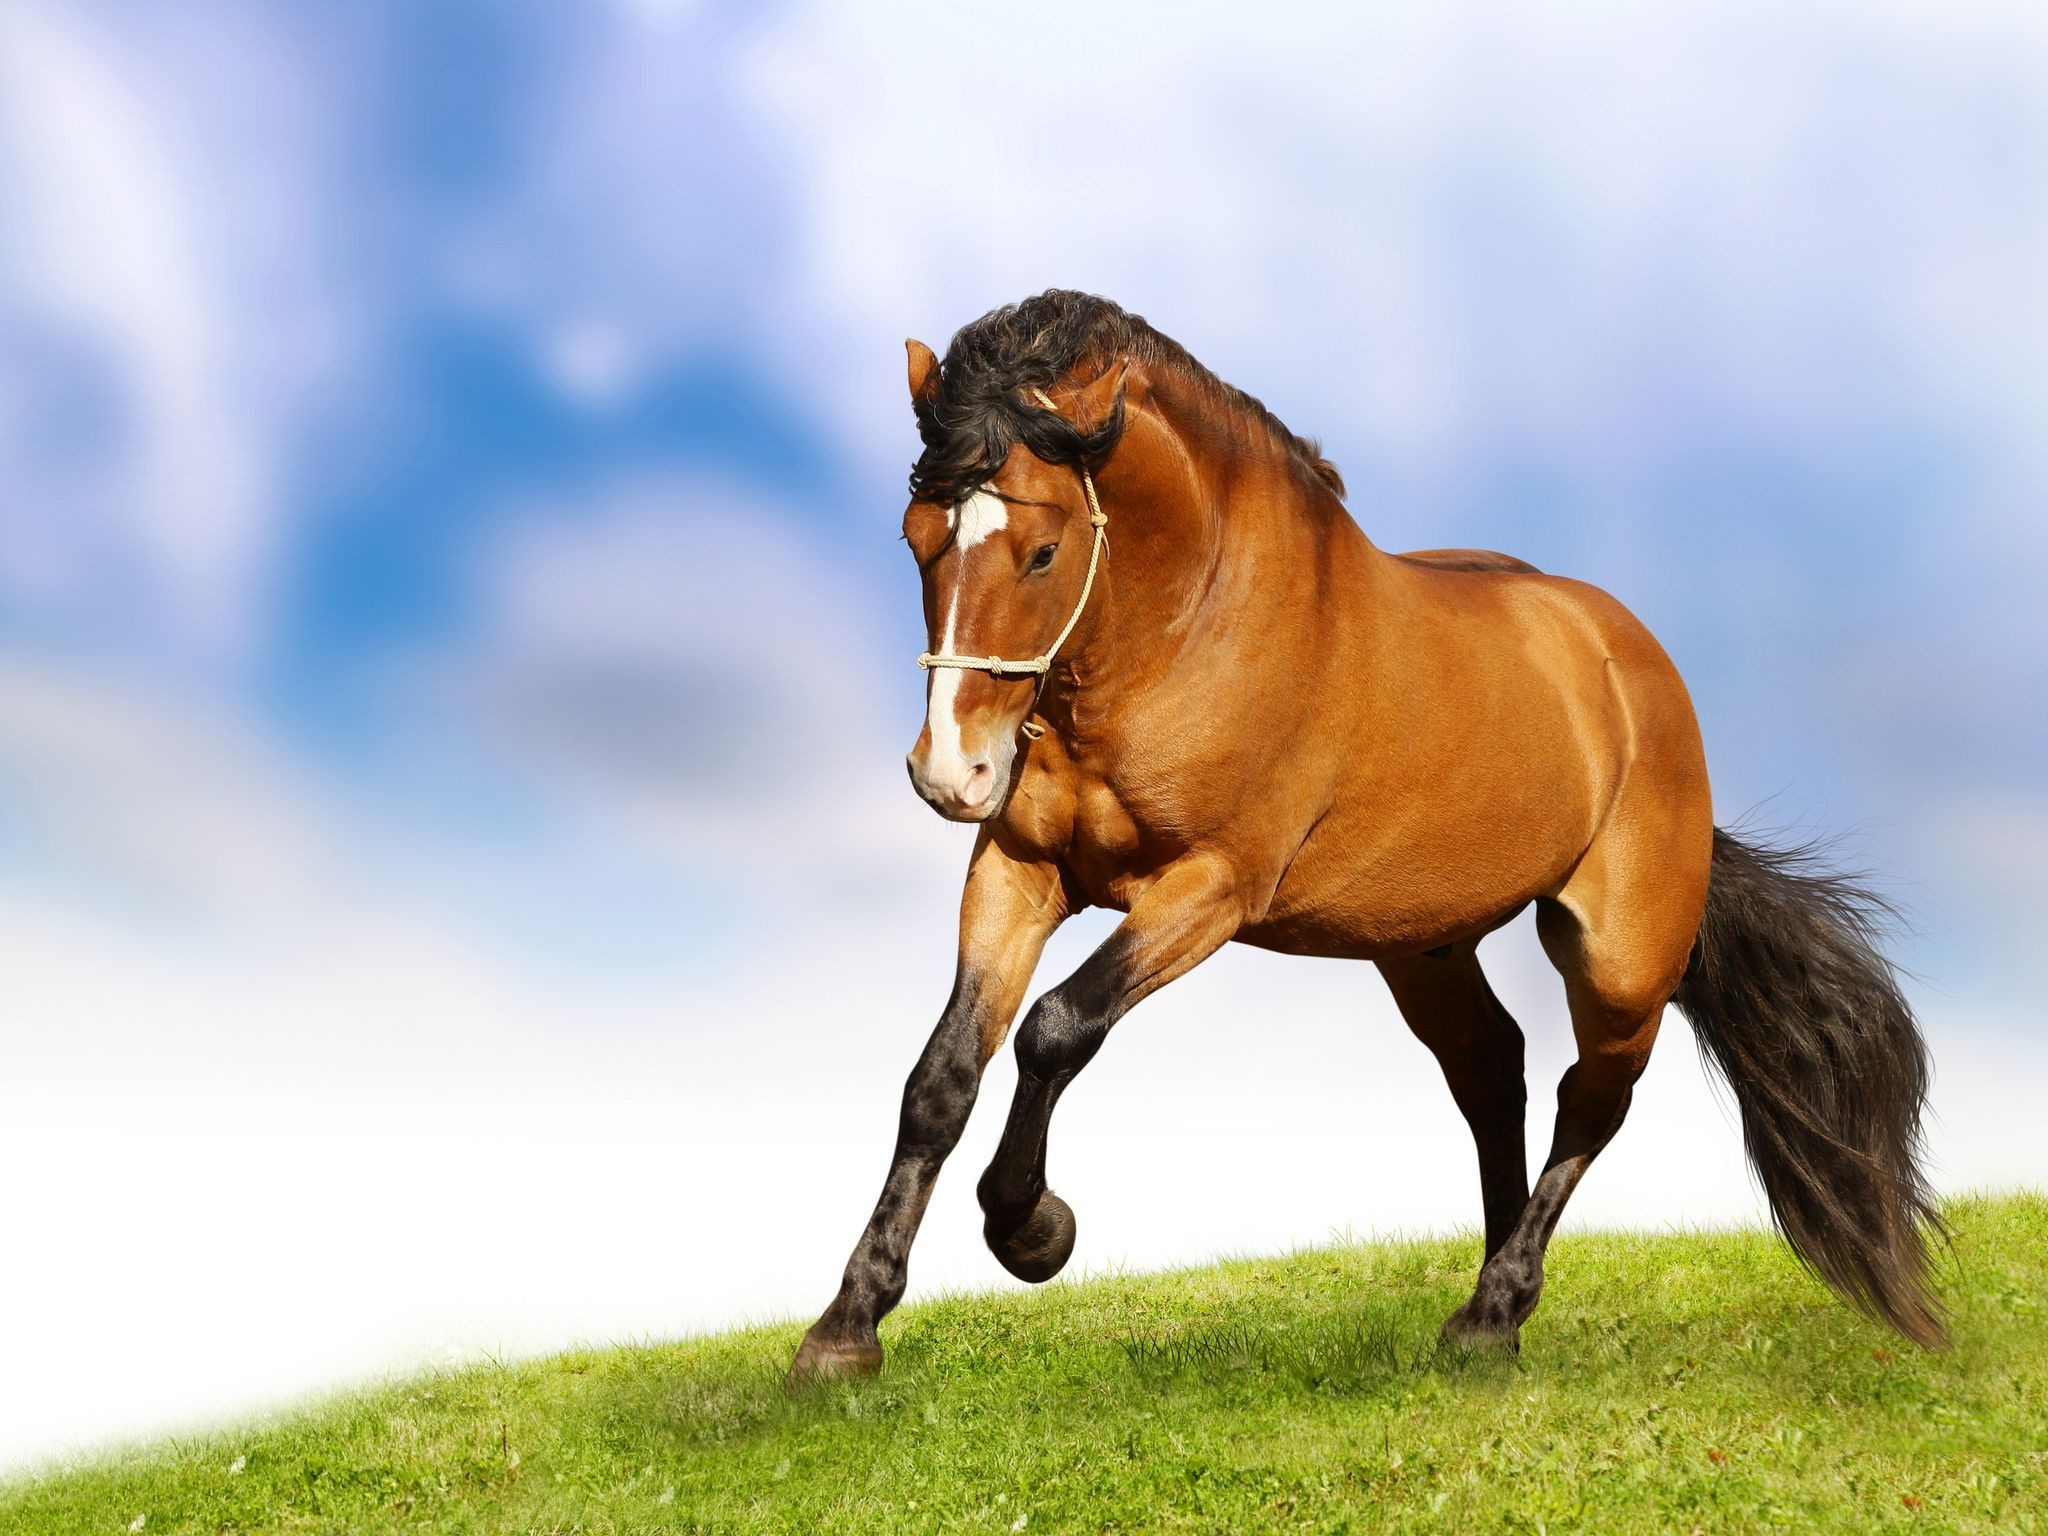 Res: 2048x1536, Wallpapers Beautiful Horses images